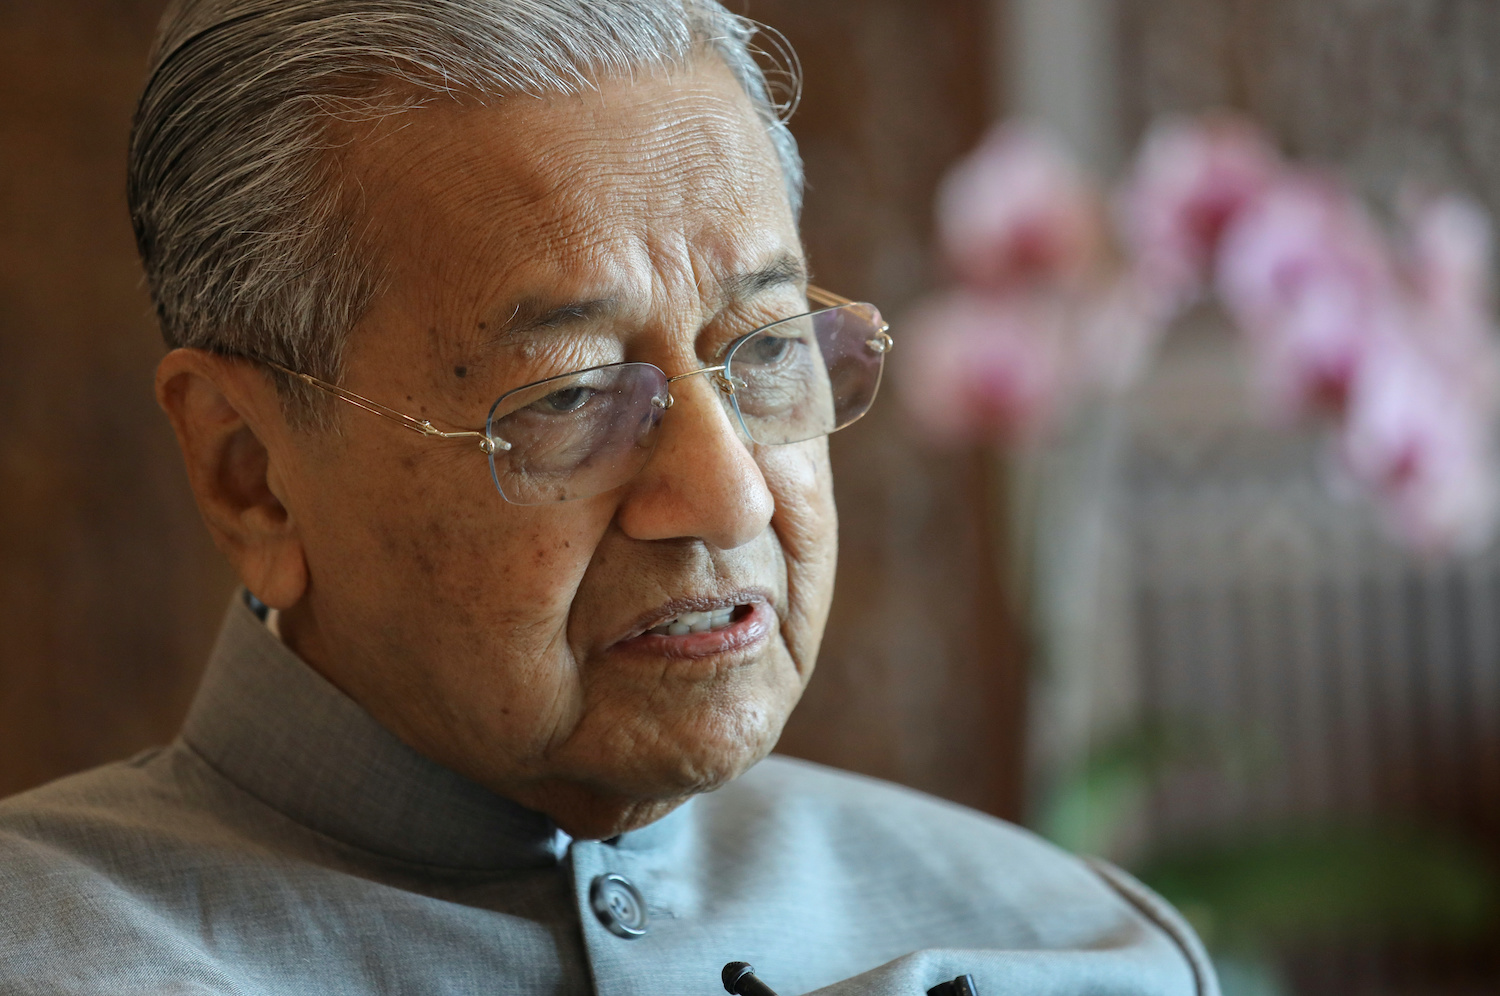 U.S. sanctions on Iran violate international law - Mahathir